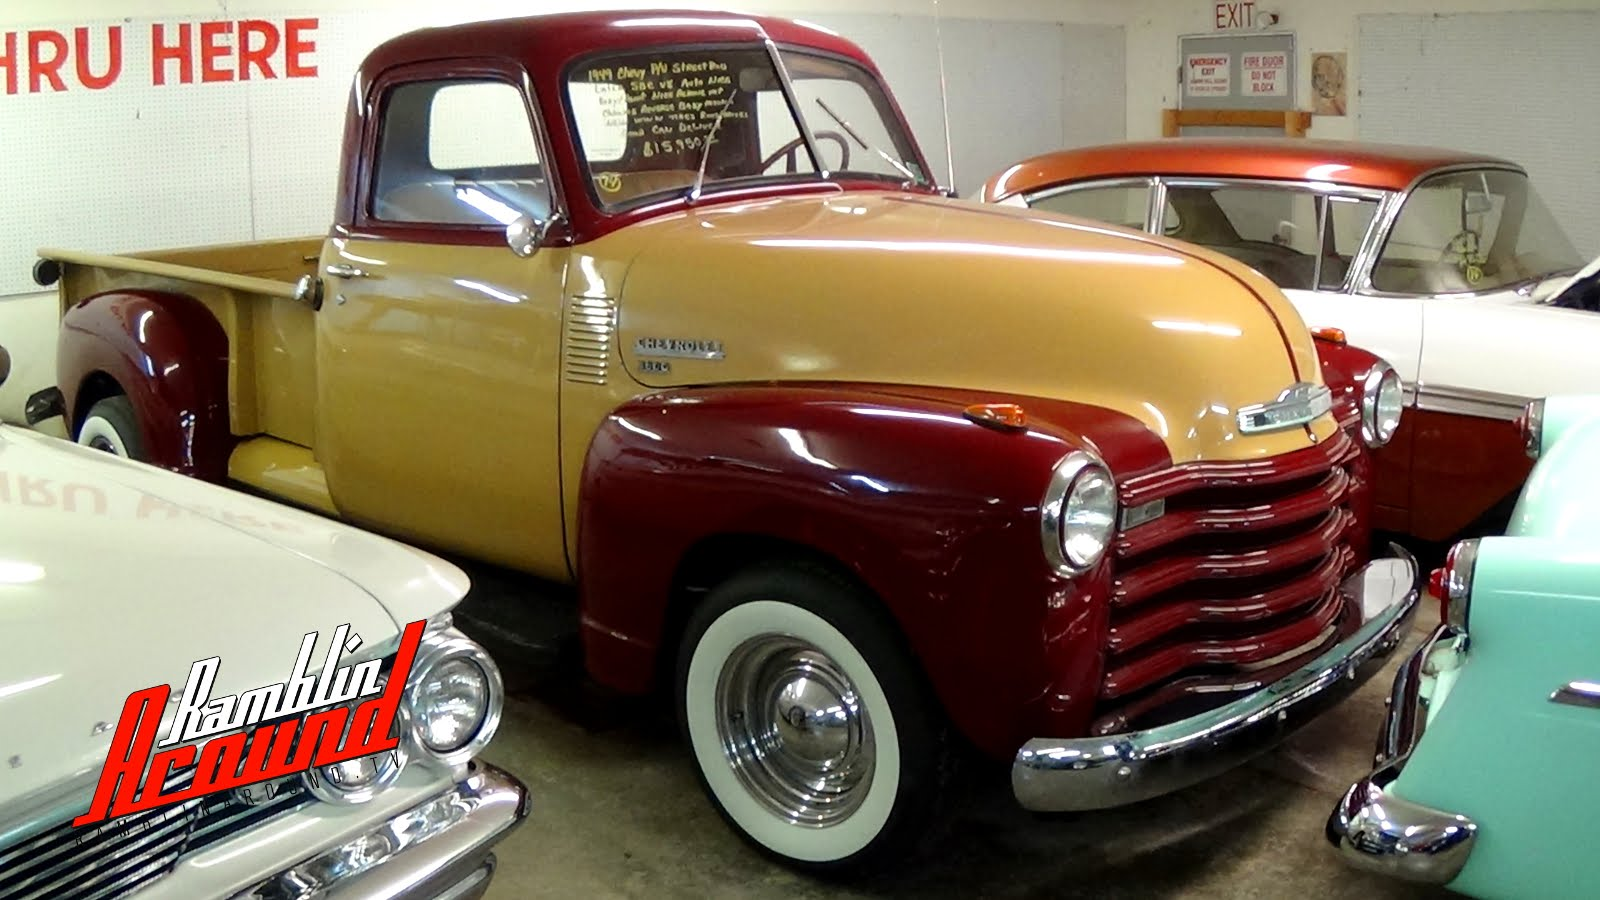 Hot Rods Archives Page 14 Of 20 Legendarylist 1951 Chevrolet Custom Rod Lets Take A Closer Look To This Cool Looking 1949